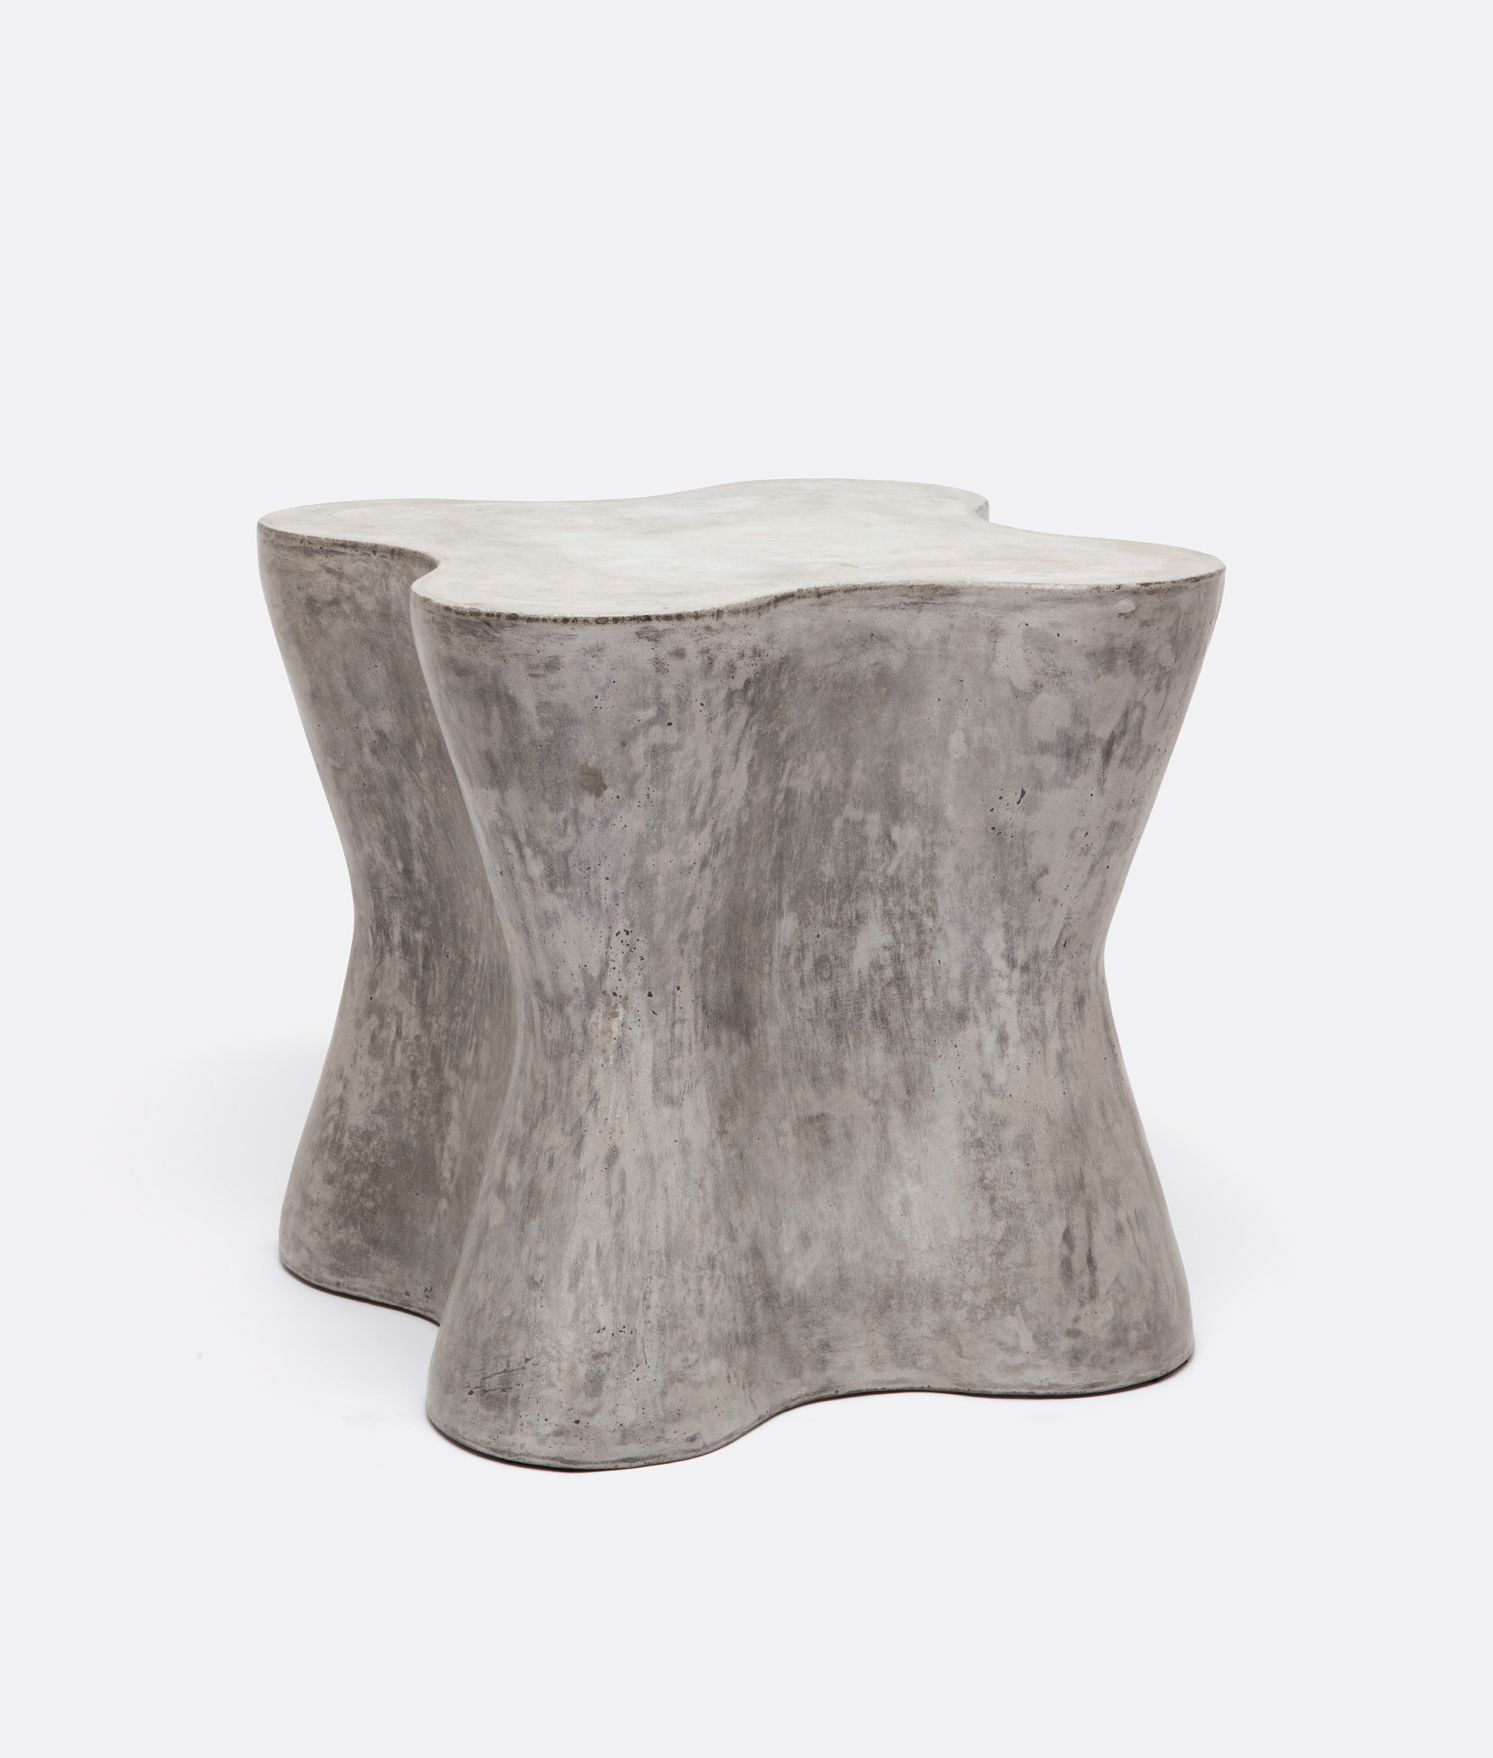 outdoor large arbre concrete side table mecox gardens fnst lgarbre white and gold console wood glass nest tables coffee base ideas nautical end lamps ava furniture sliding door